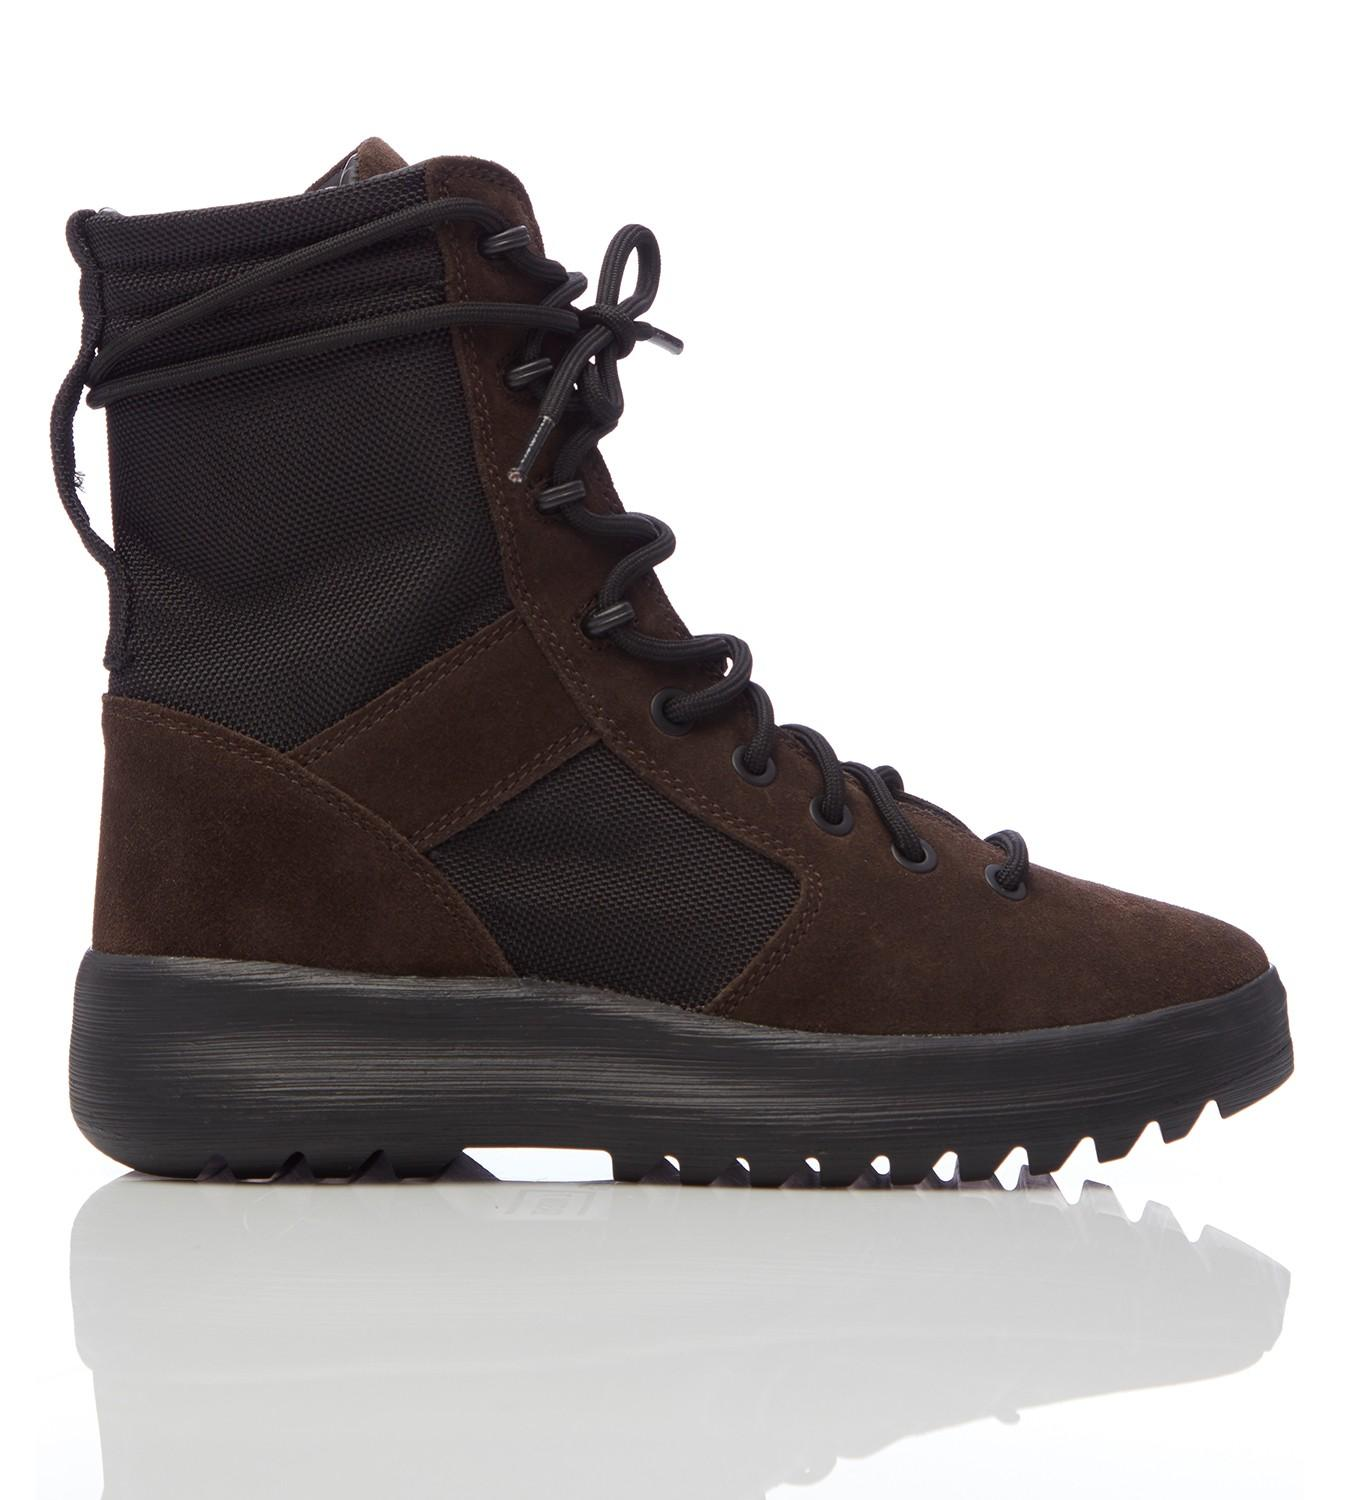 1cfb5ea78f3ac Lyst - Yeezy Season 7 Military Boots in Black for Men